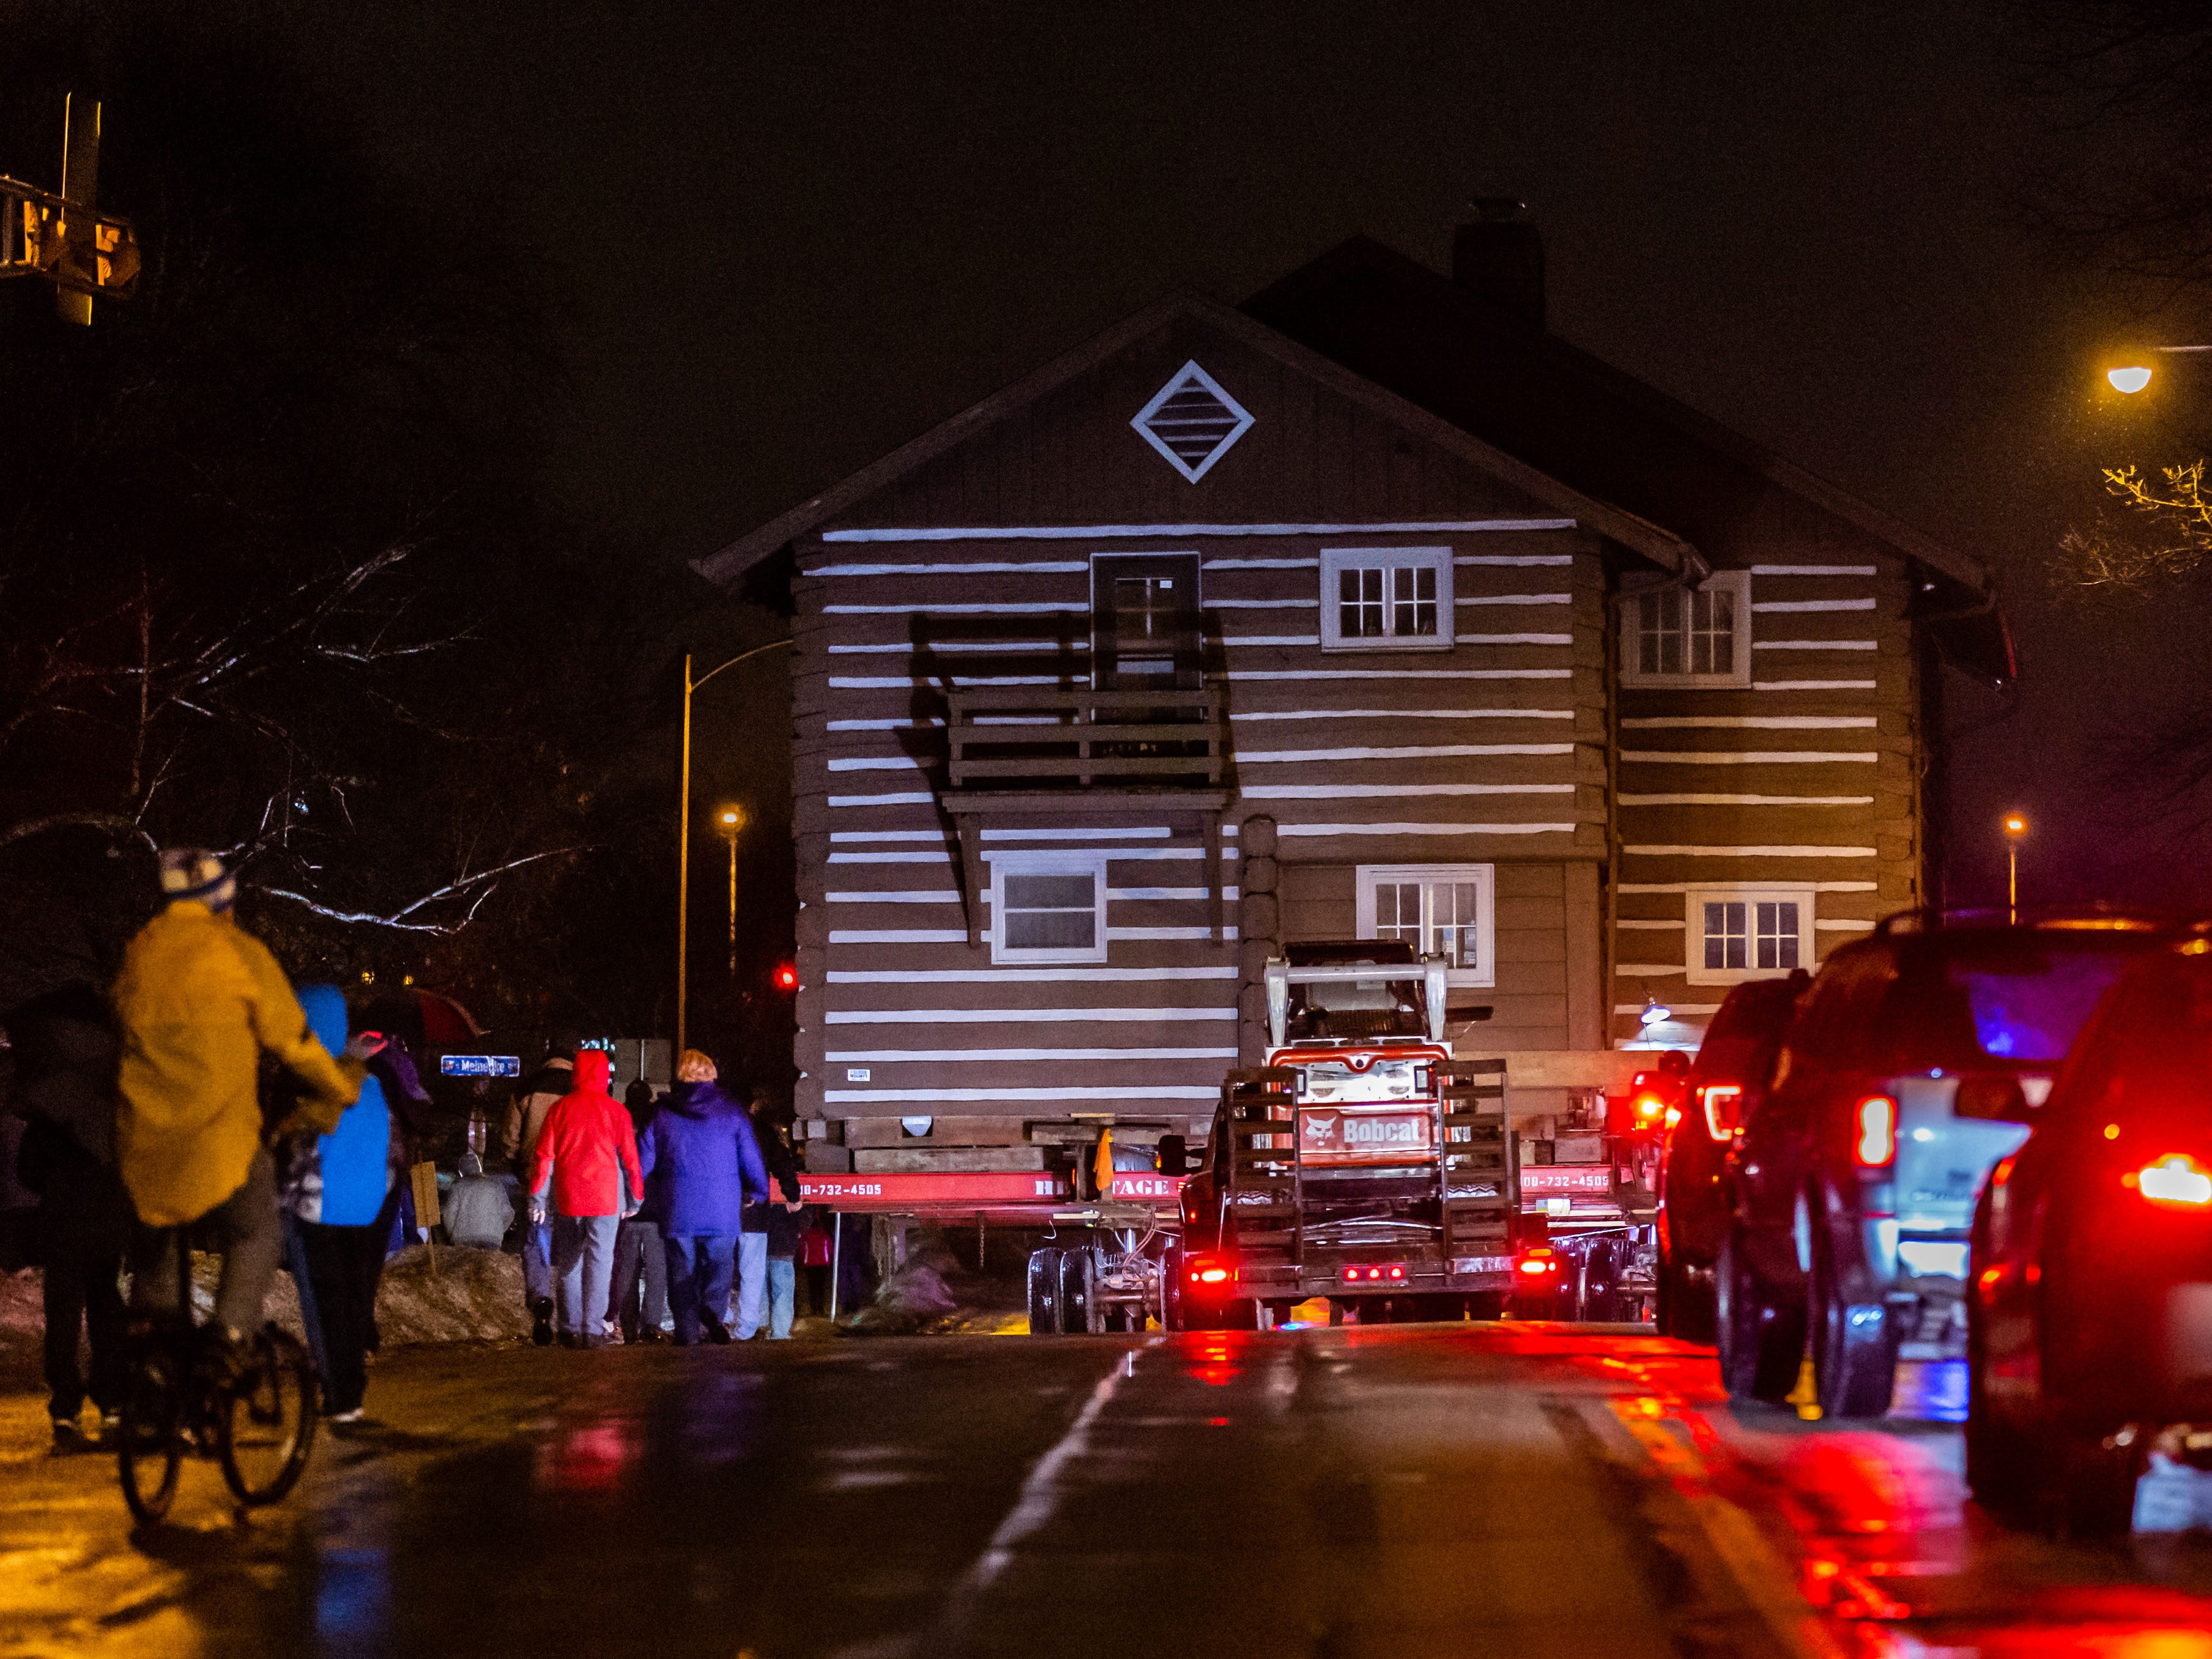 """Spectators follow along as the """"Tosa Log Cabin"""" rolls down N. Wauwatosa Ave. to it's destination at 6404 W. North Ave. on Wednesday evening, March 13, 2019. The cabin is being moved to make way for a three-story apartment complex called the Gallatin Apartments."""